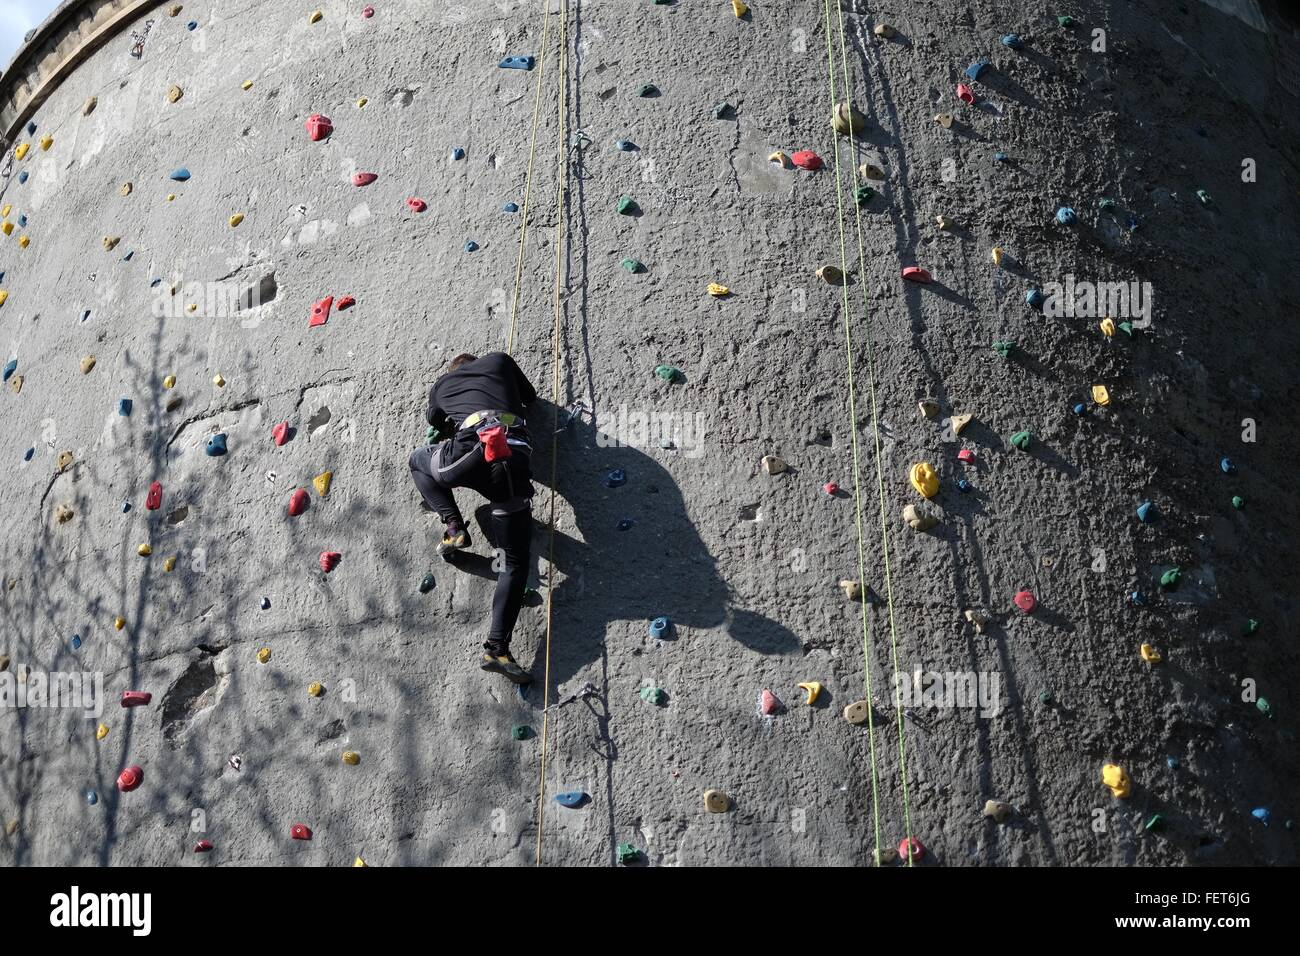 Low Angle View Of Man on Climbing Wall Photo Stock